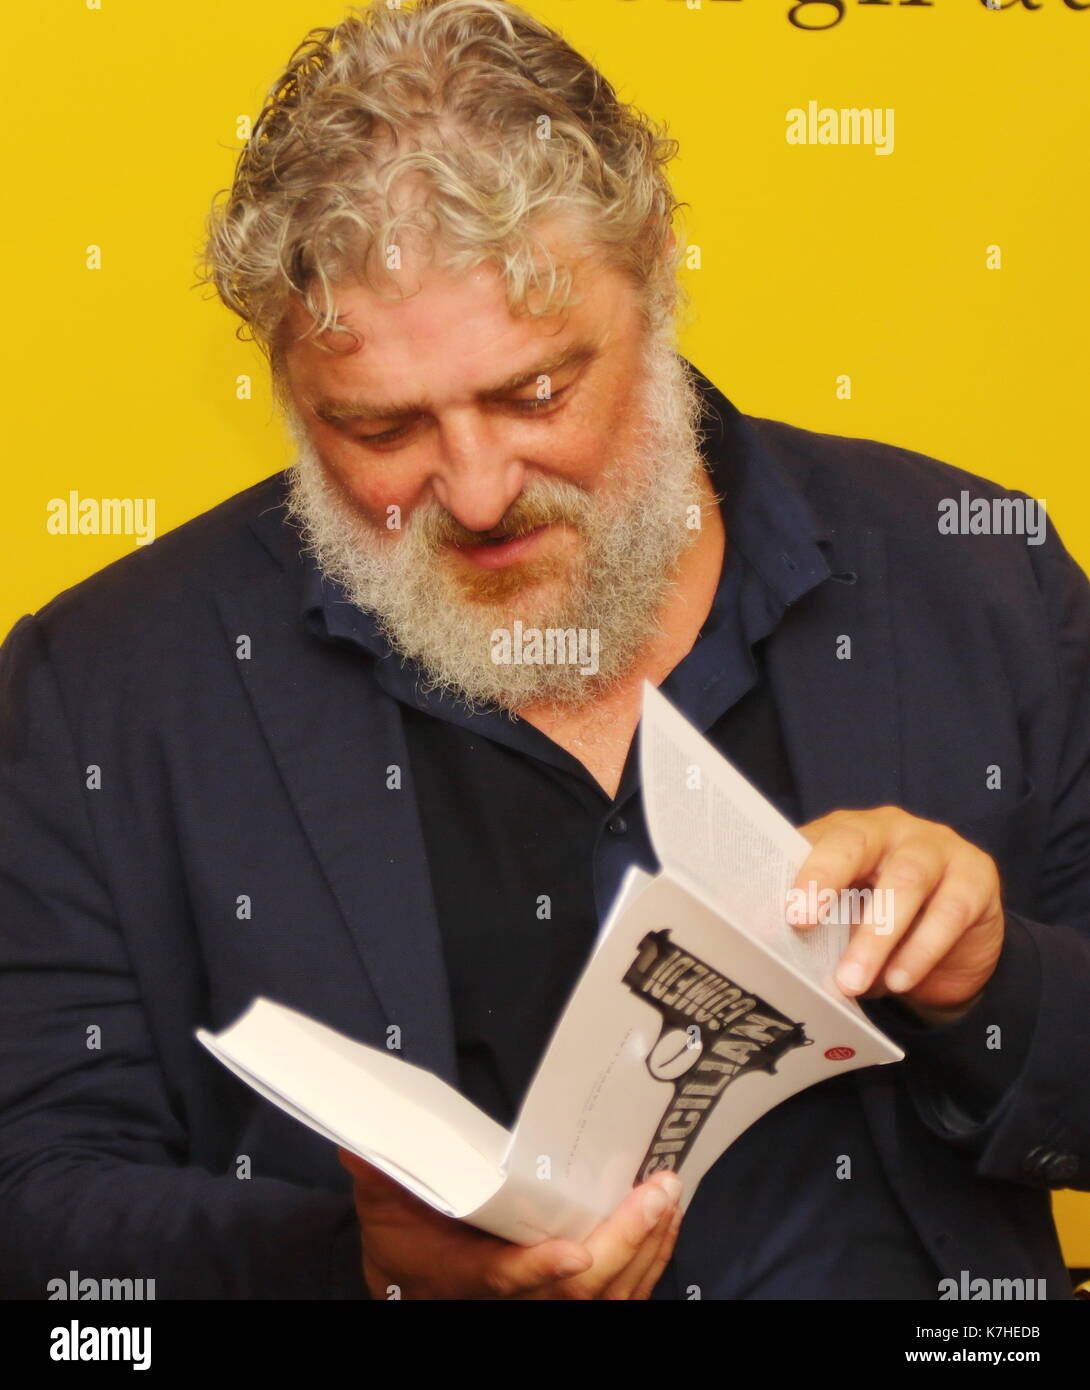 ITALY, Pordenone: Italian author Ottavio Cappellani attend at the press conference during a literary event Pordenonelegge.it XVII BookFest with authors from 13 to 17 September at Pordenone on 16th September, 2017. - Stock Image